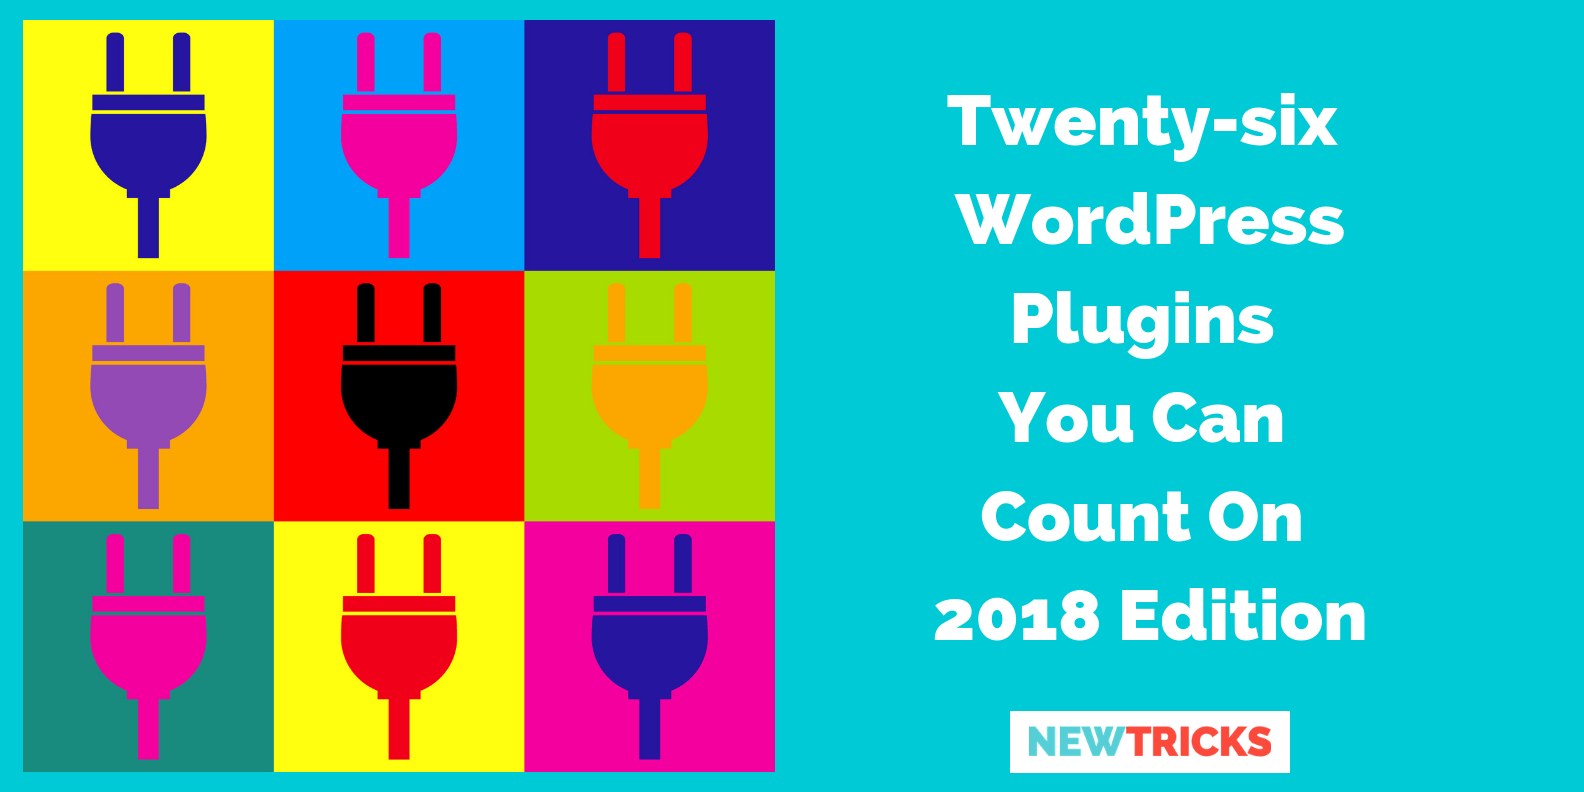 26 WP Plugins to Count on 2018